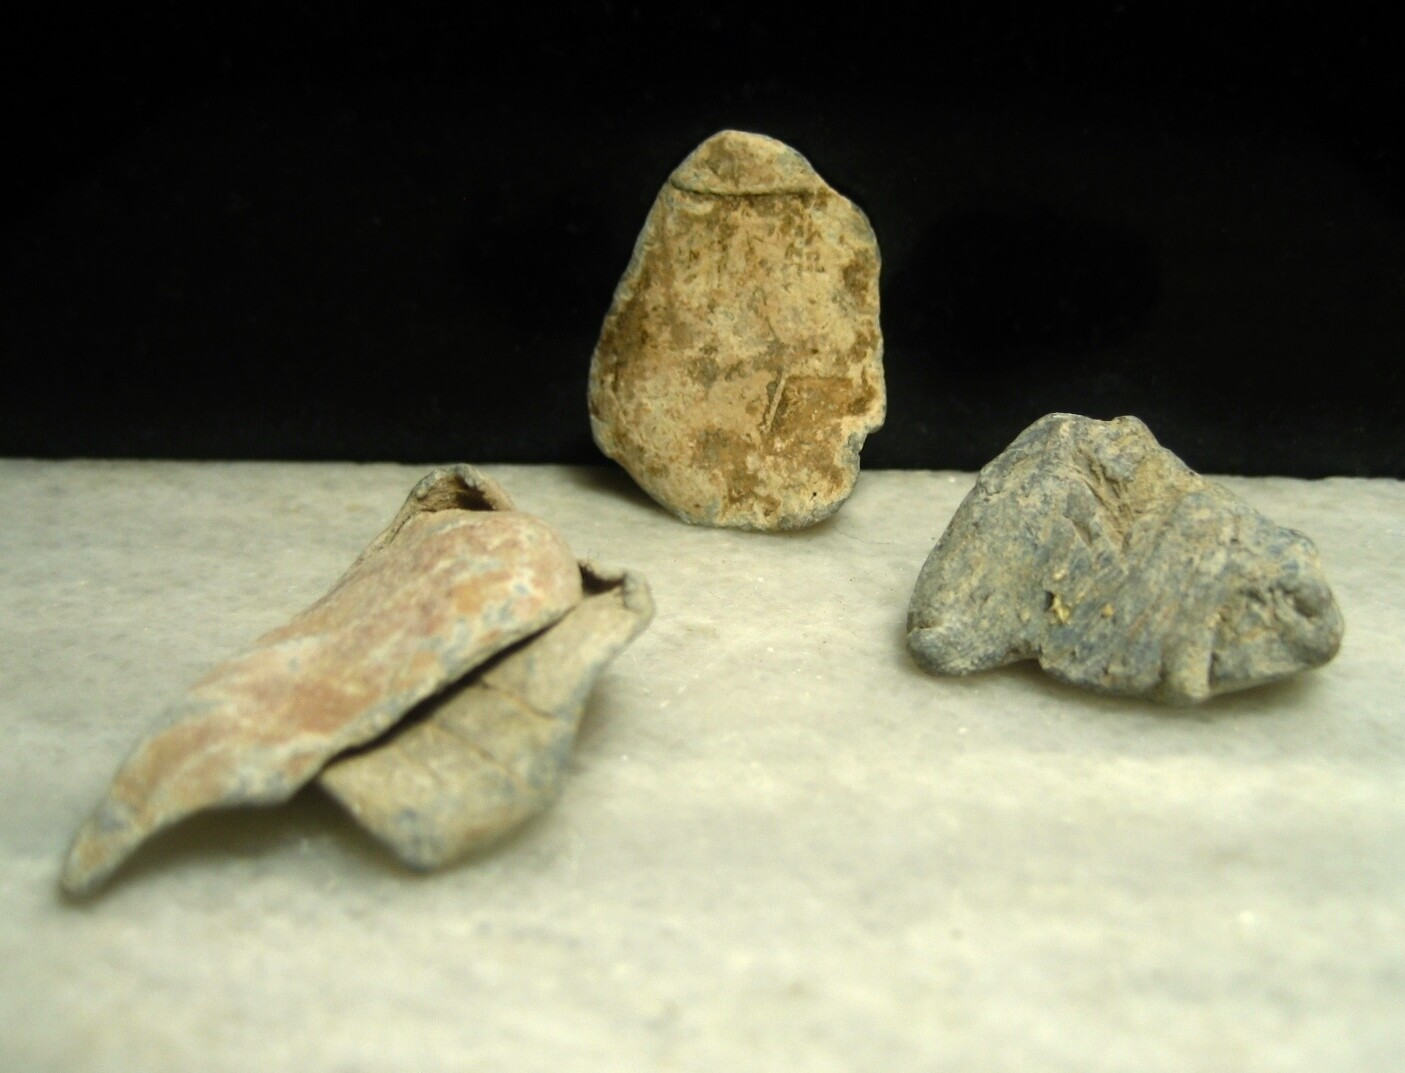 JUST ADDED ON 1/8 - THE BATTLE OF RINGGOLD GAP (CHATTANOOGA RETREAT) - Three High Impact Fired Bullet Fragments